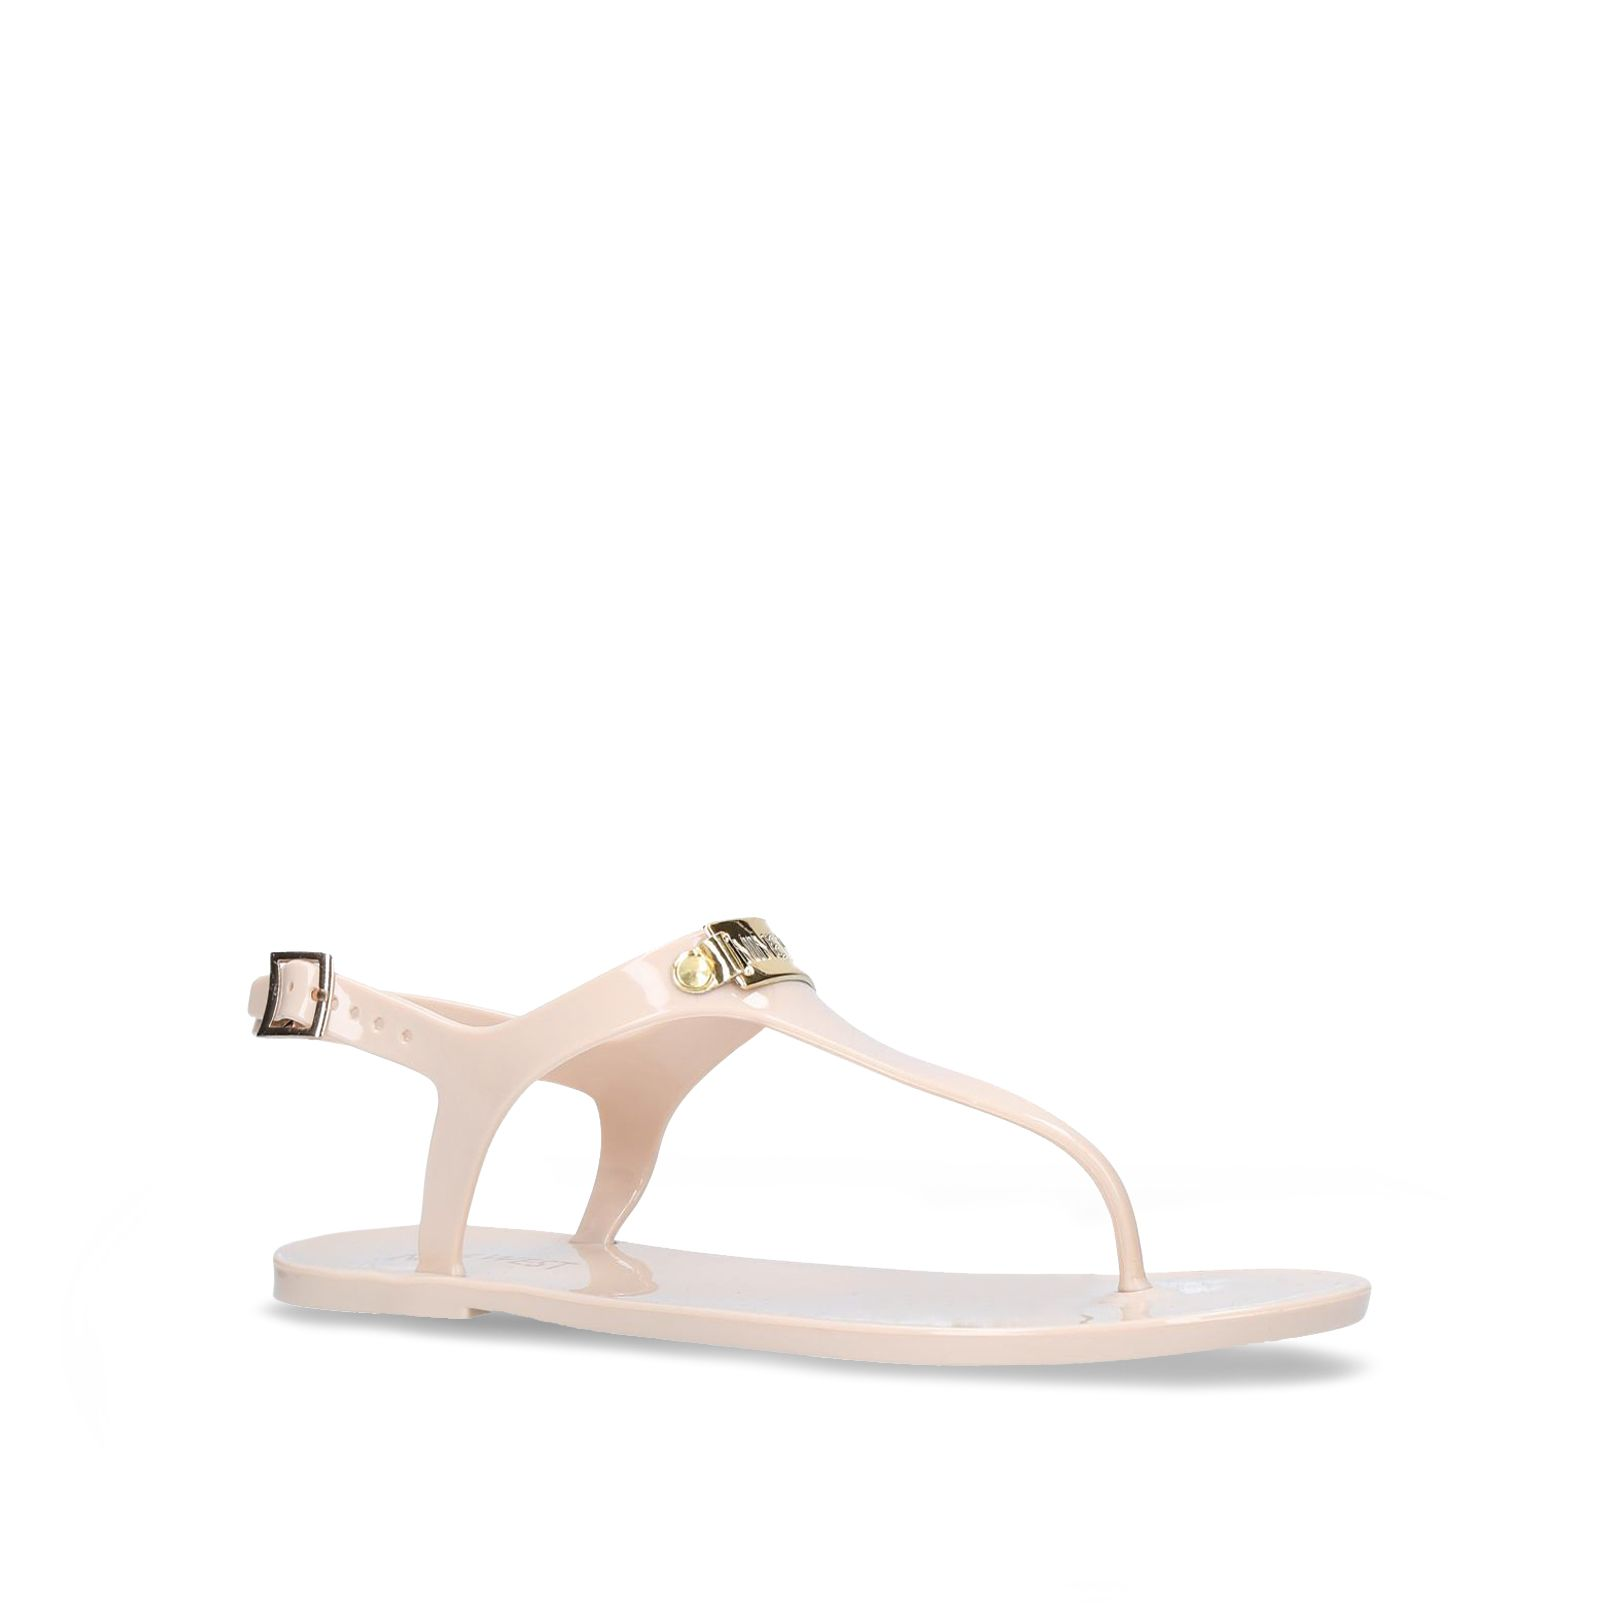 Nine West Jasmine Sandals, Nude